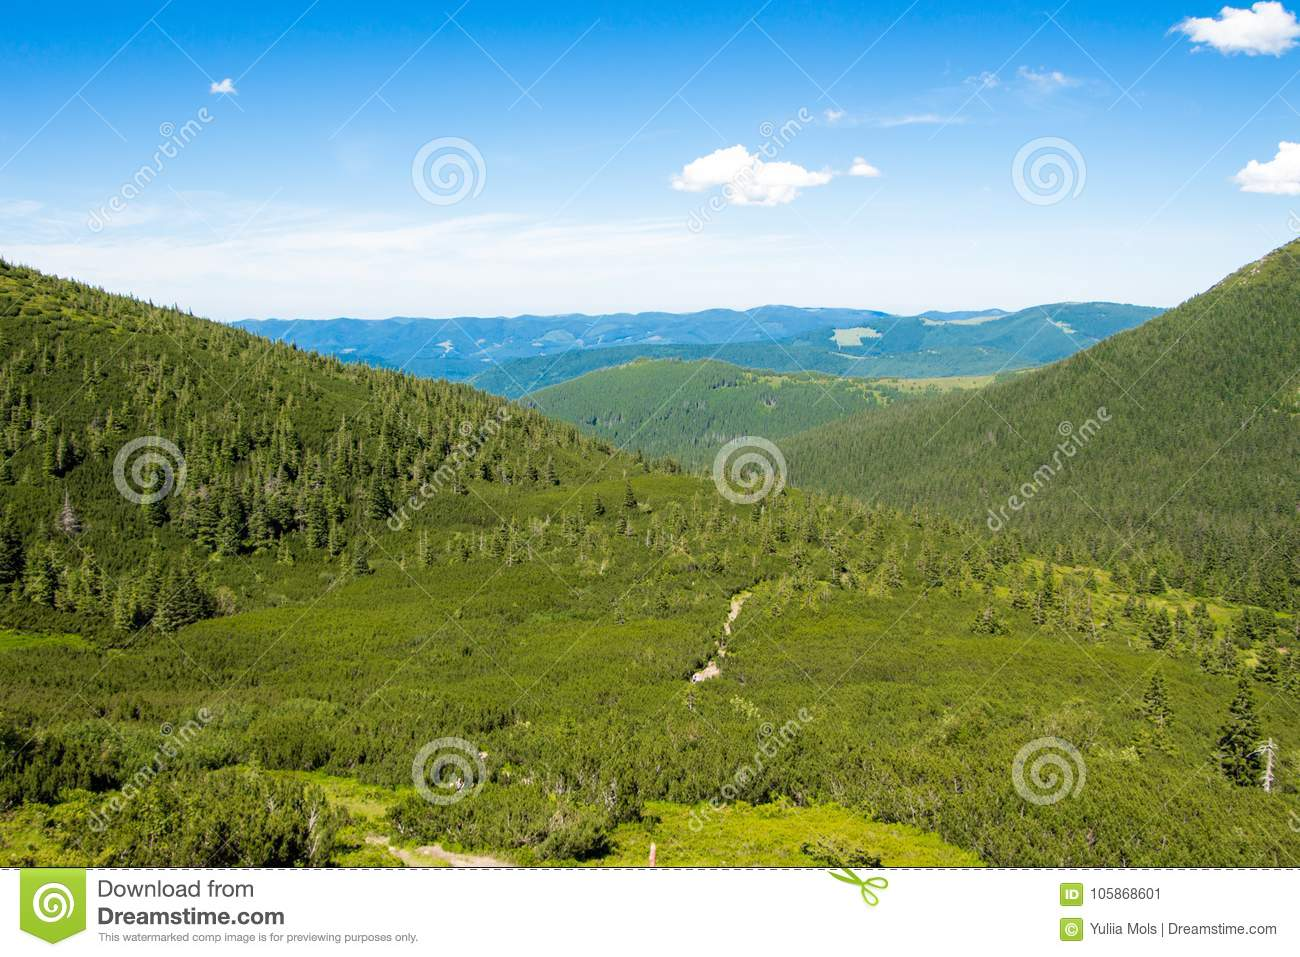 Landscapes Of The Mountains And Mountain Natural Green